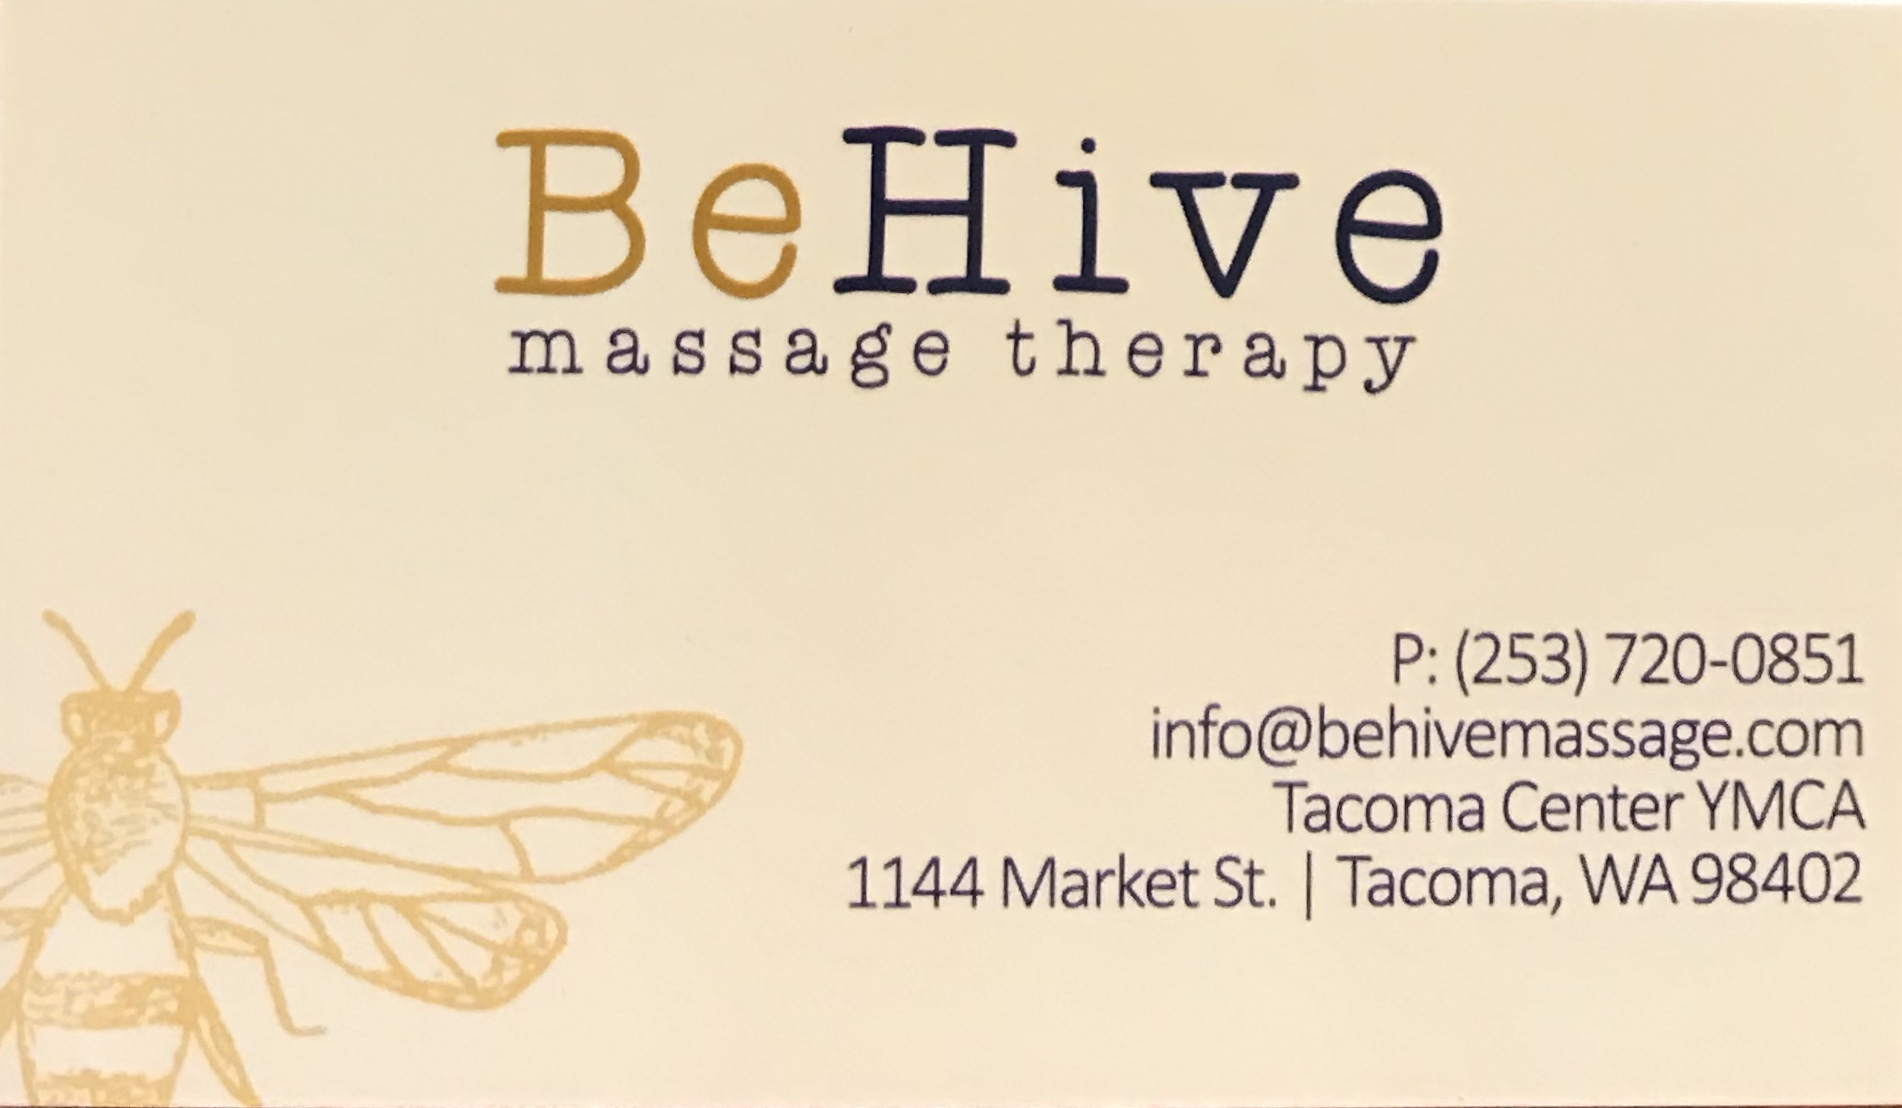 BeHive Massage Therapy - We would like to thank BeHive who keeps us healthy. Please consider supporting BeHive with a massage visit of your own.